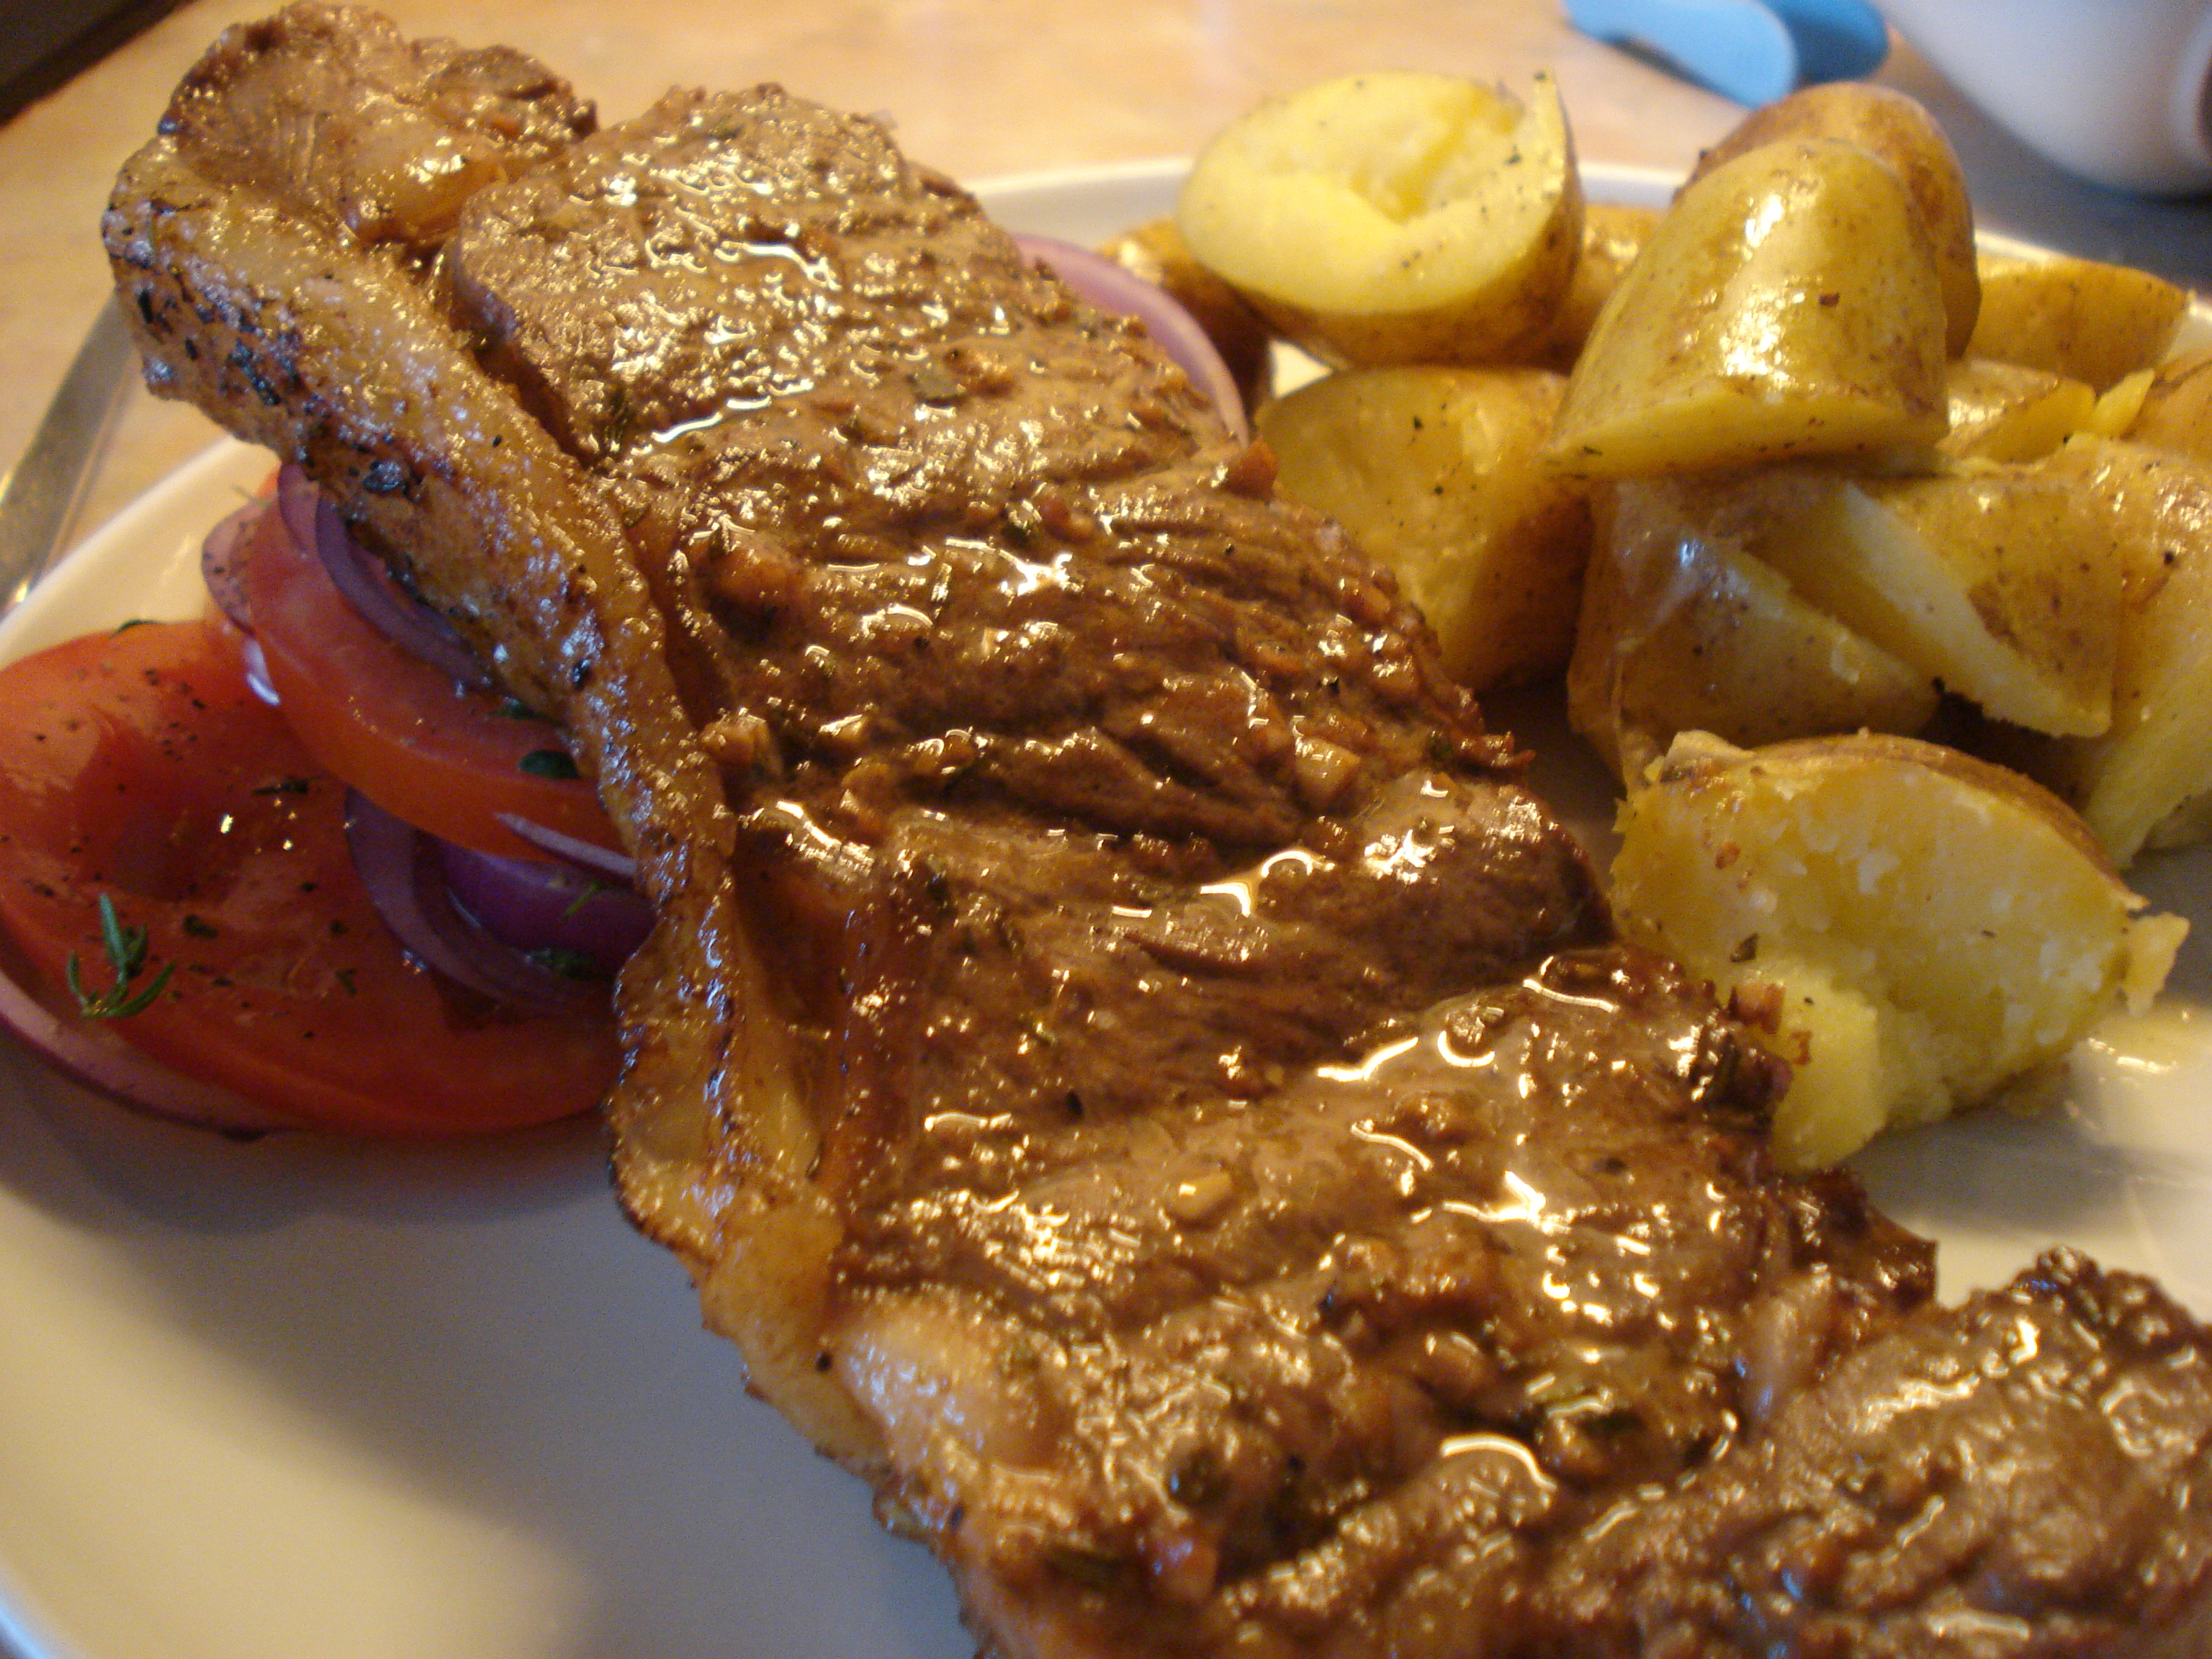 barbecued sirloin steak